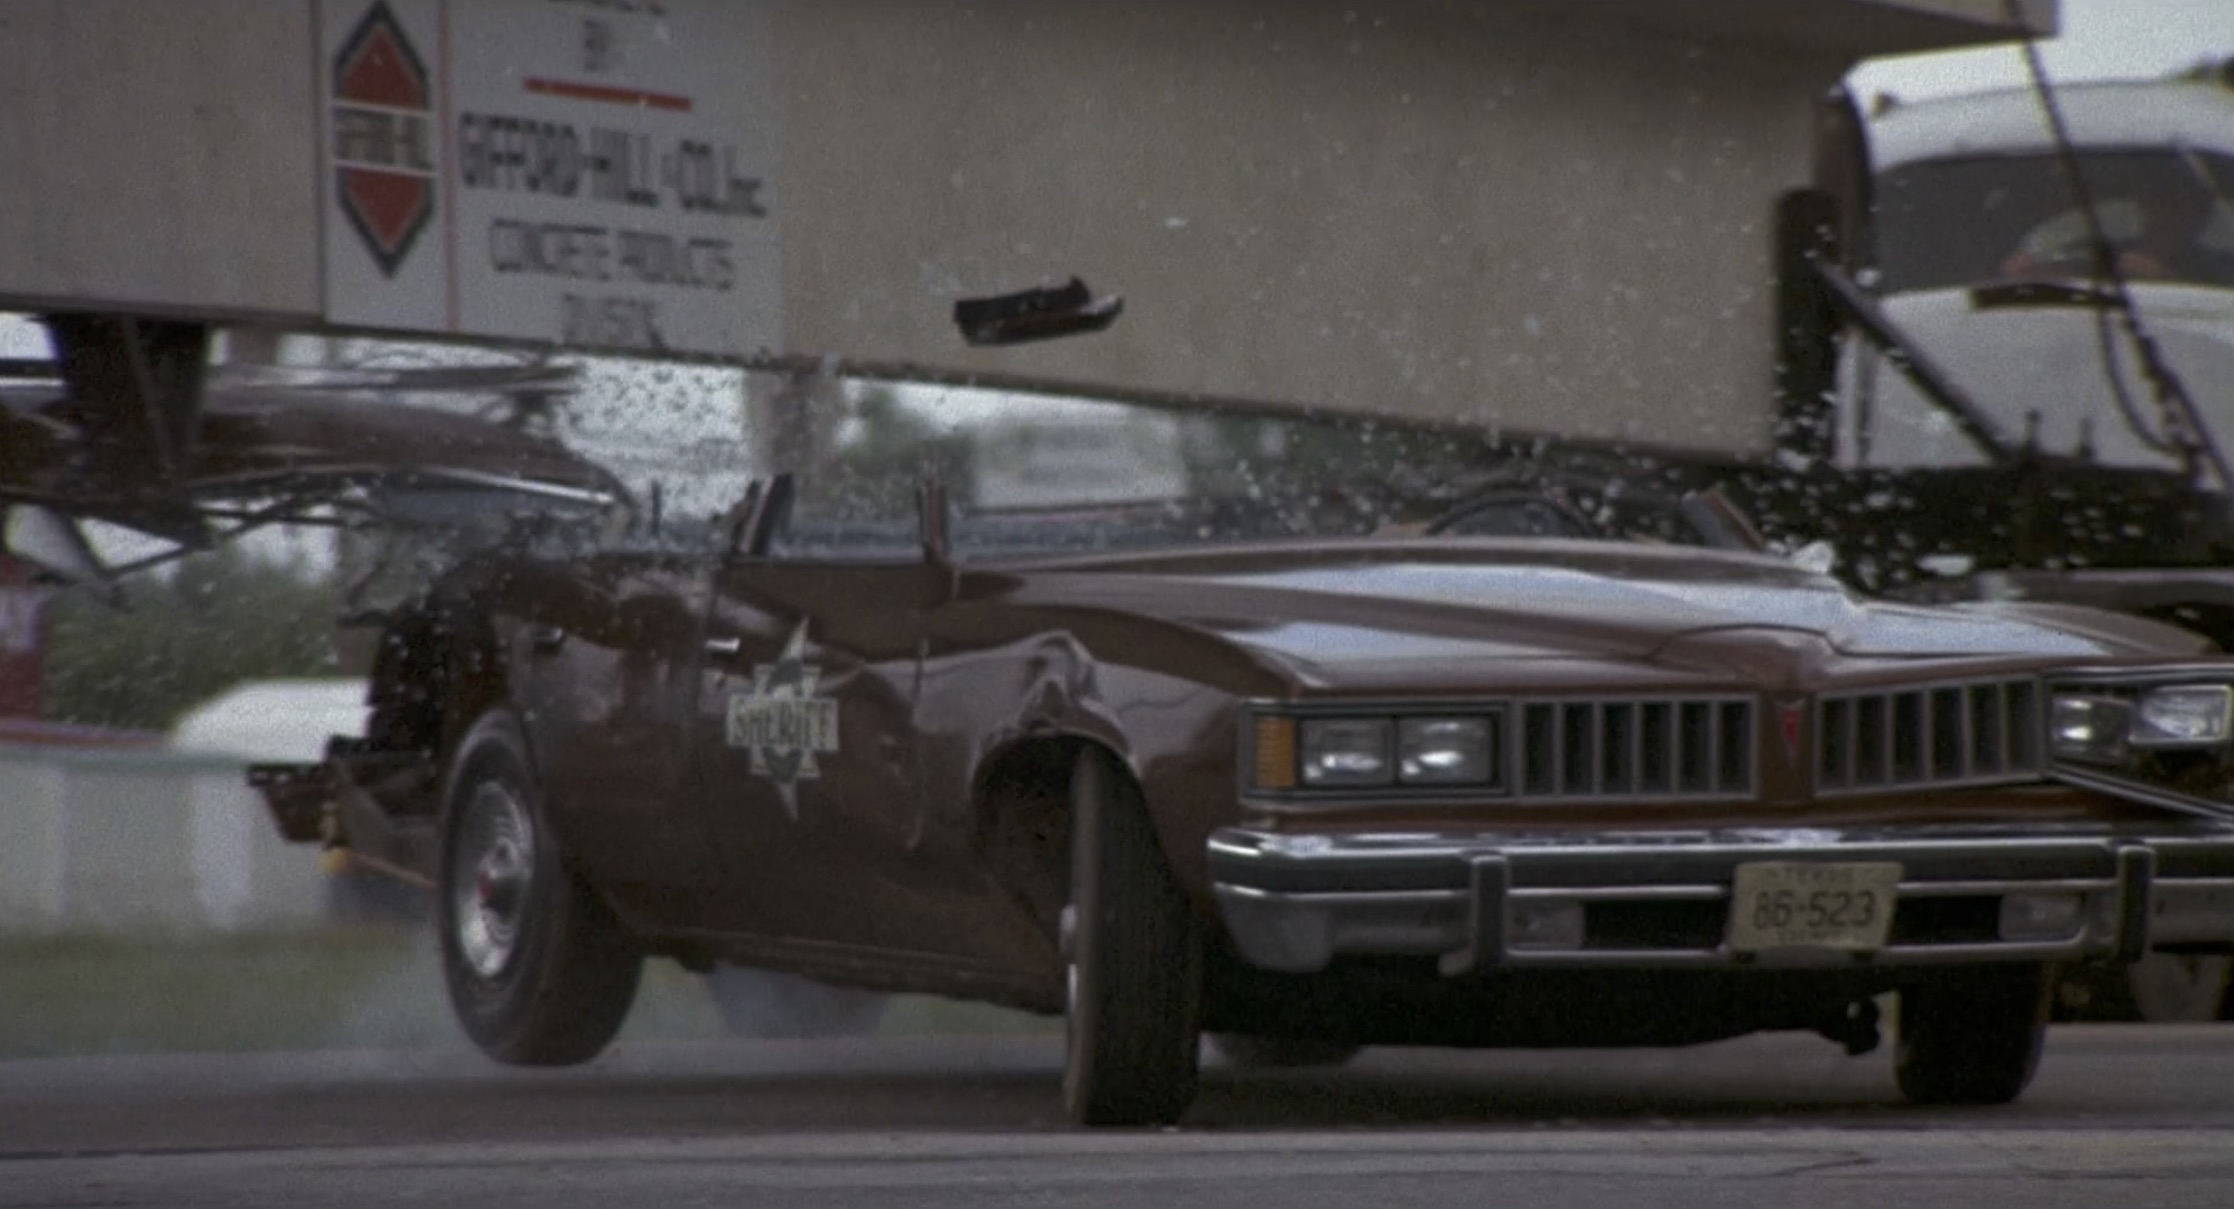 Smokey and the bandit grand prix top chopped off